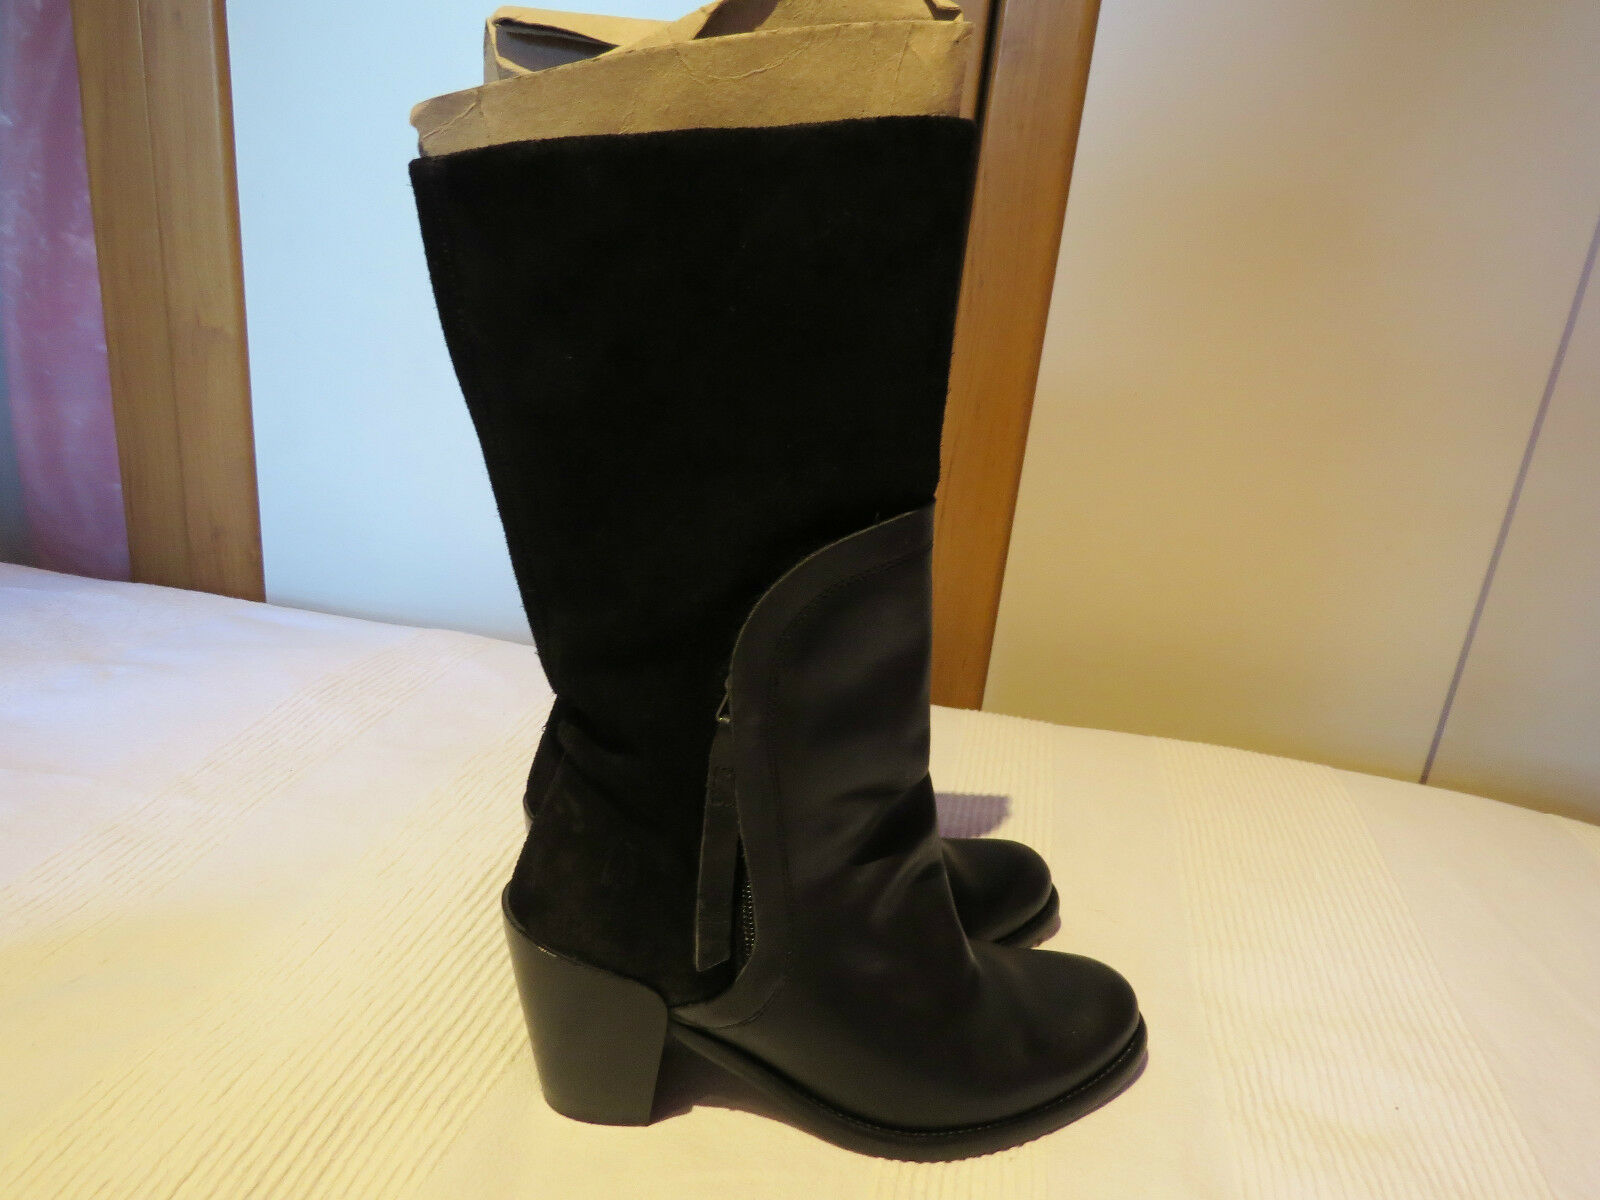 FLY LONDON BLACK LEATHER & SUEDE WESTERN MID-CALF BOOTS UK 4 EUR 37